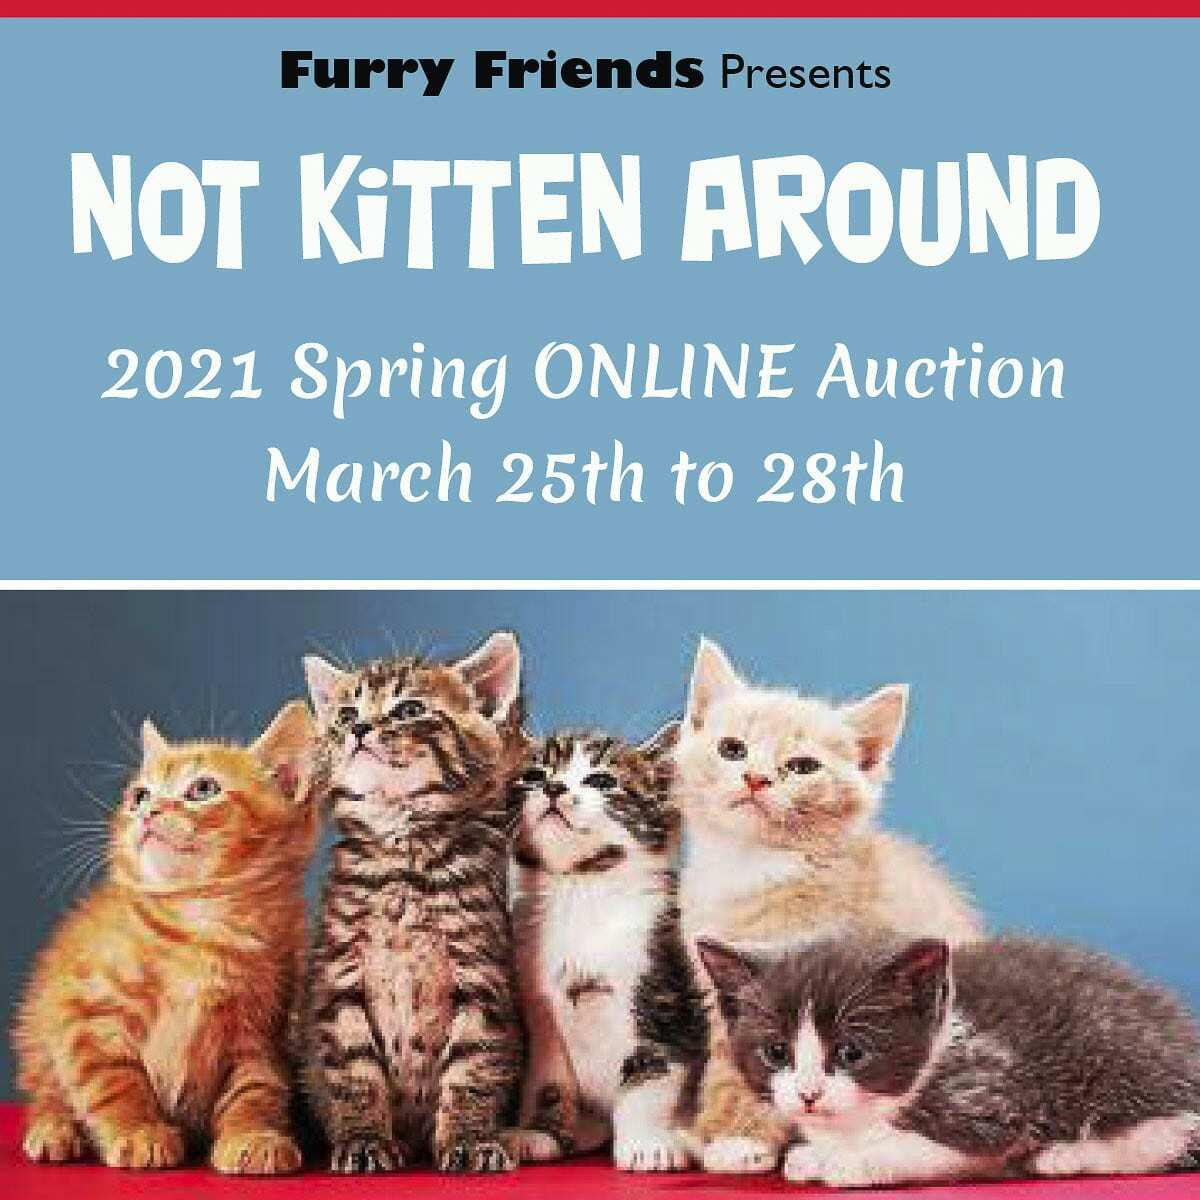 The auction's name 'Not Kitten Around' is to bring attention to Kitten Season. Photo courtesy of Furry Friends